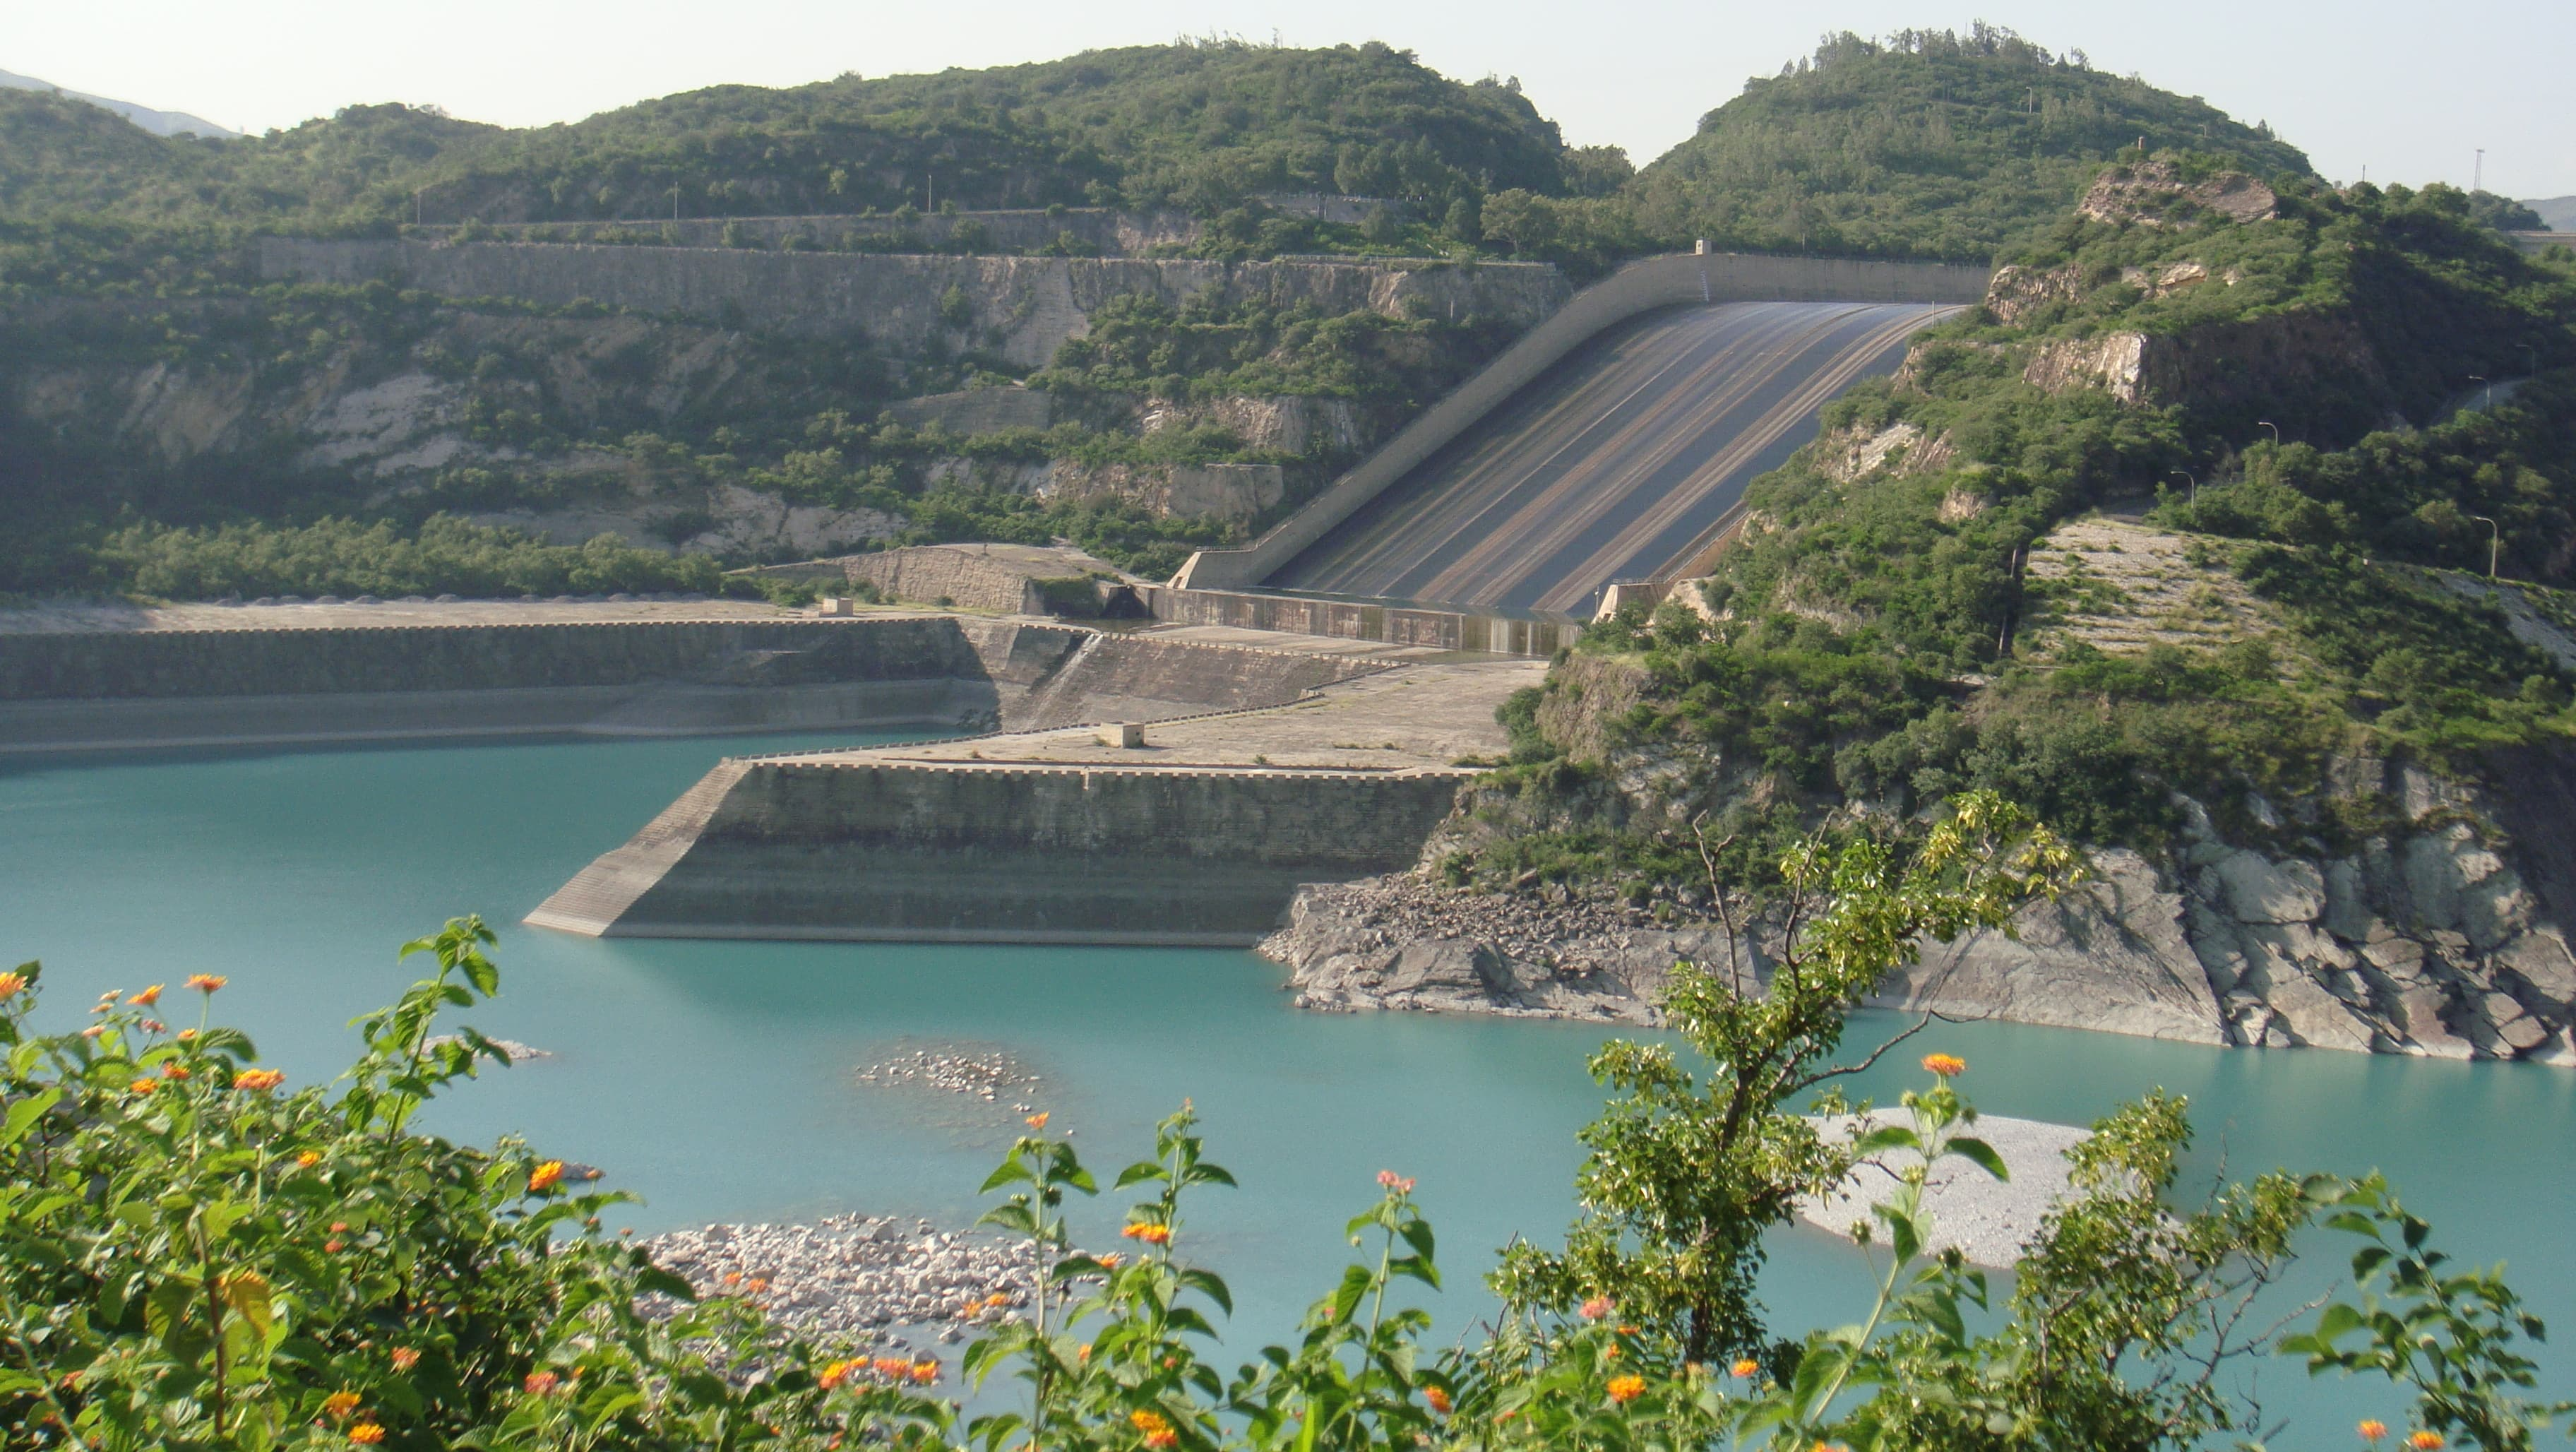 Learning Hard Lessons: AIIB and the Tarbela Dam in Pakistan